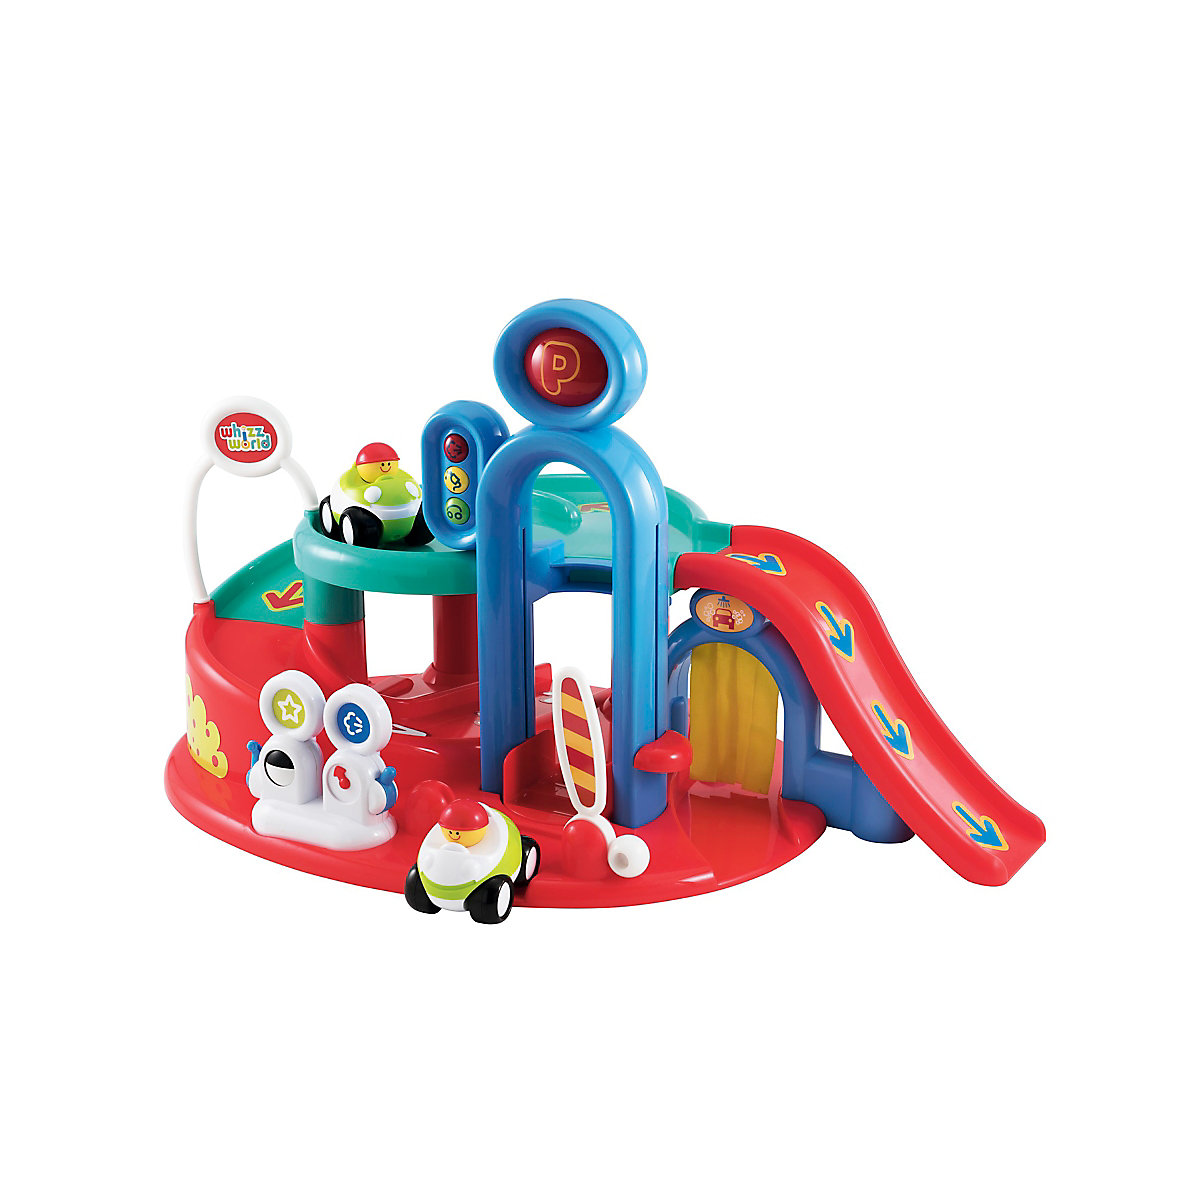 New ELC Boys and Girls Whizz World Lights and Sounds Garage Toy From 12 months - Toddler Gifts